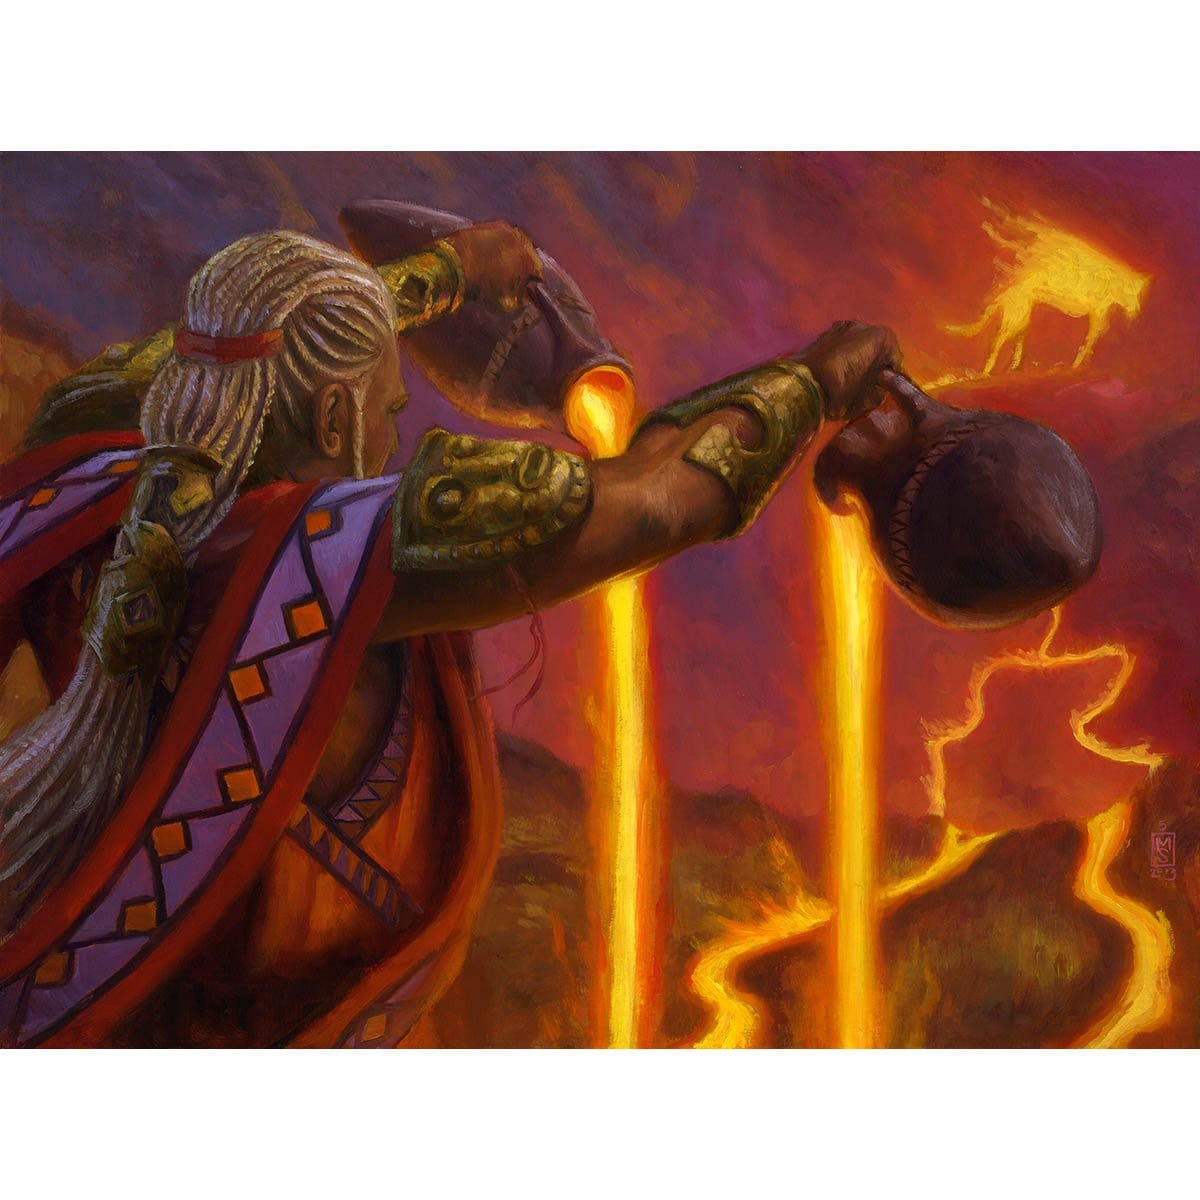 Dualcaster Mage Print - Print - Original Magic Art - Accessories for Magic the Gathering and other card games